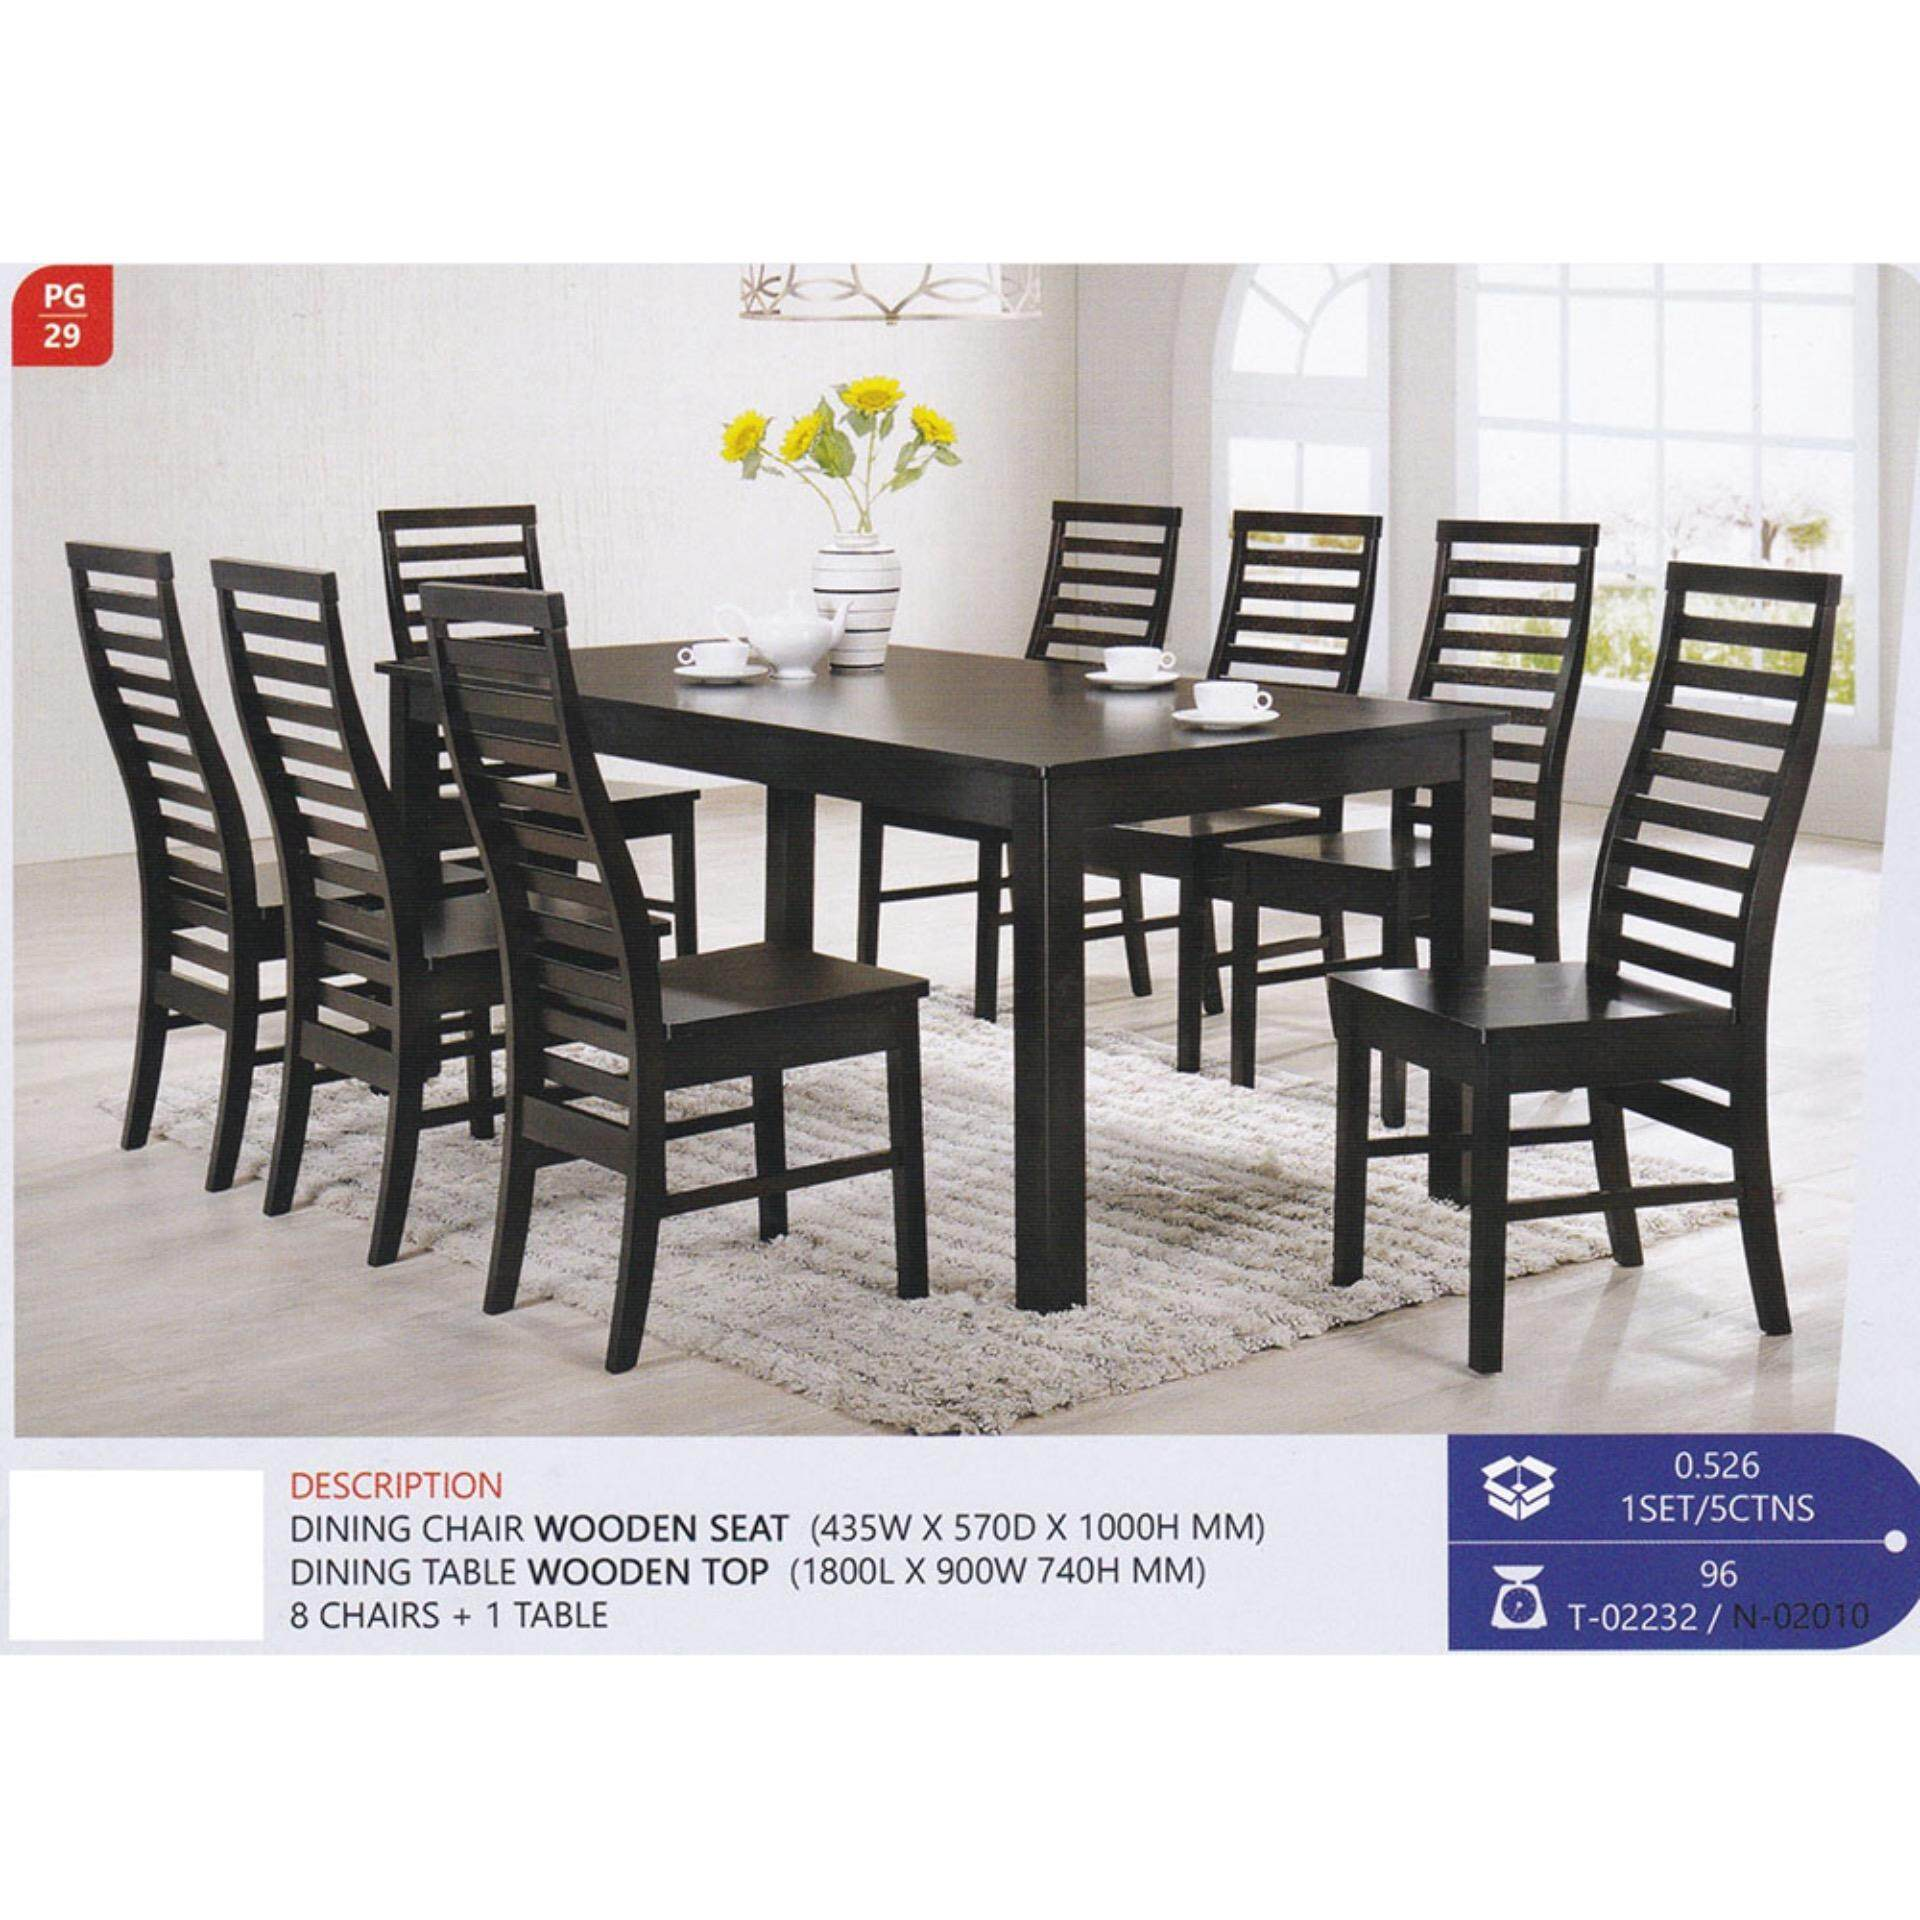 Fully Solid Wood 1+8 Dining Table Chair Set Pre Order 1 Week